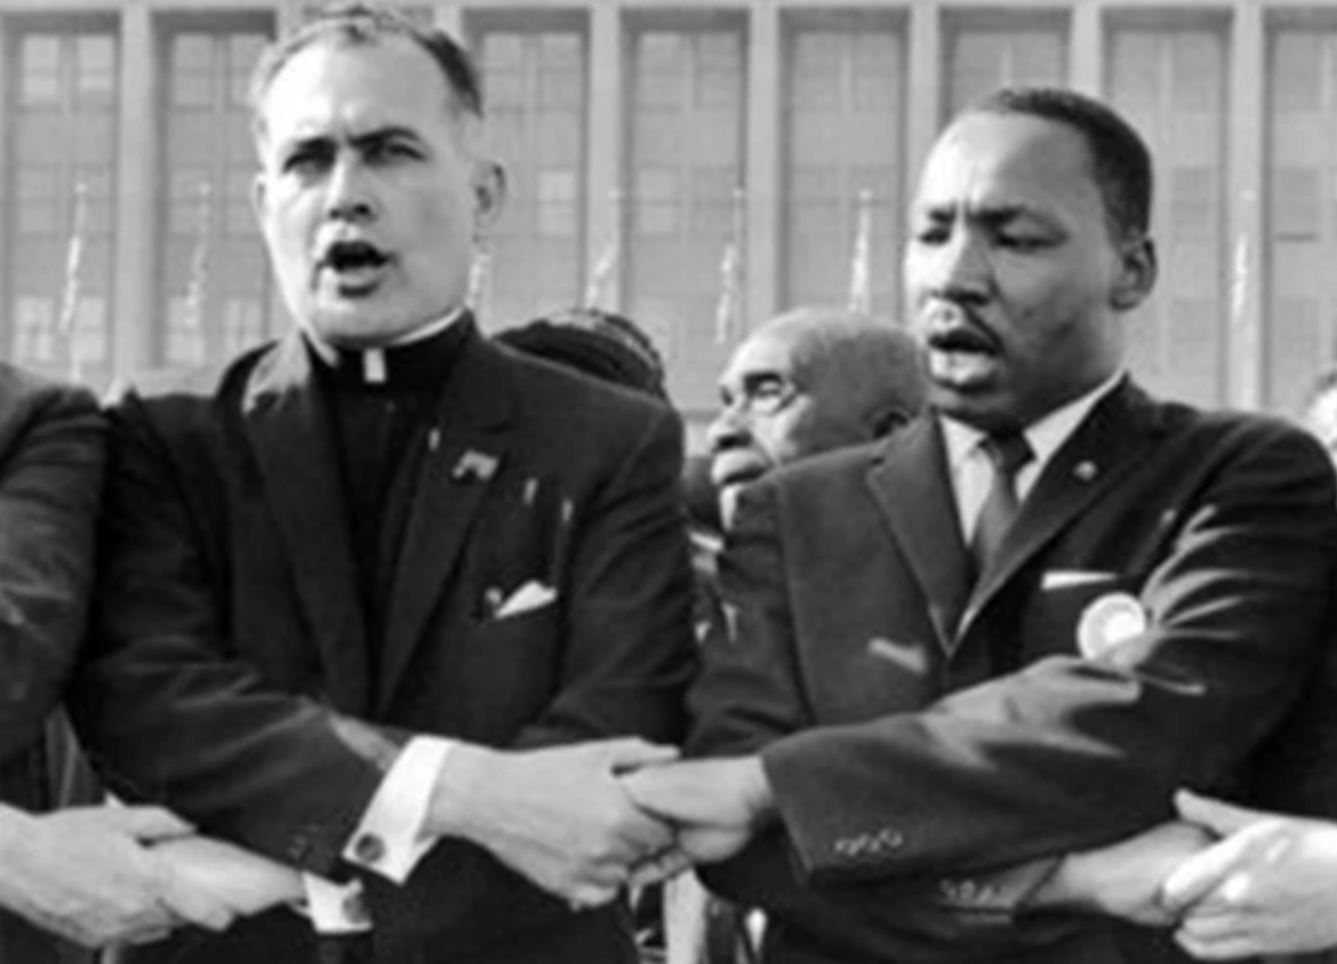 Martin Luther King Jr.'s 6 Principles of Non-Violence